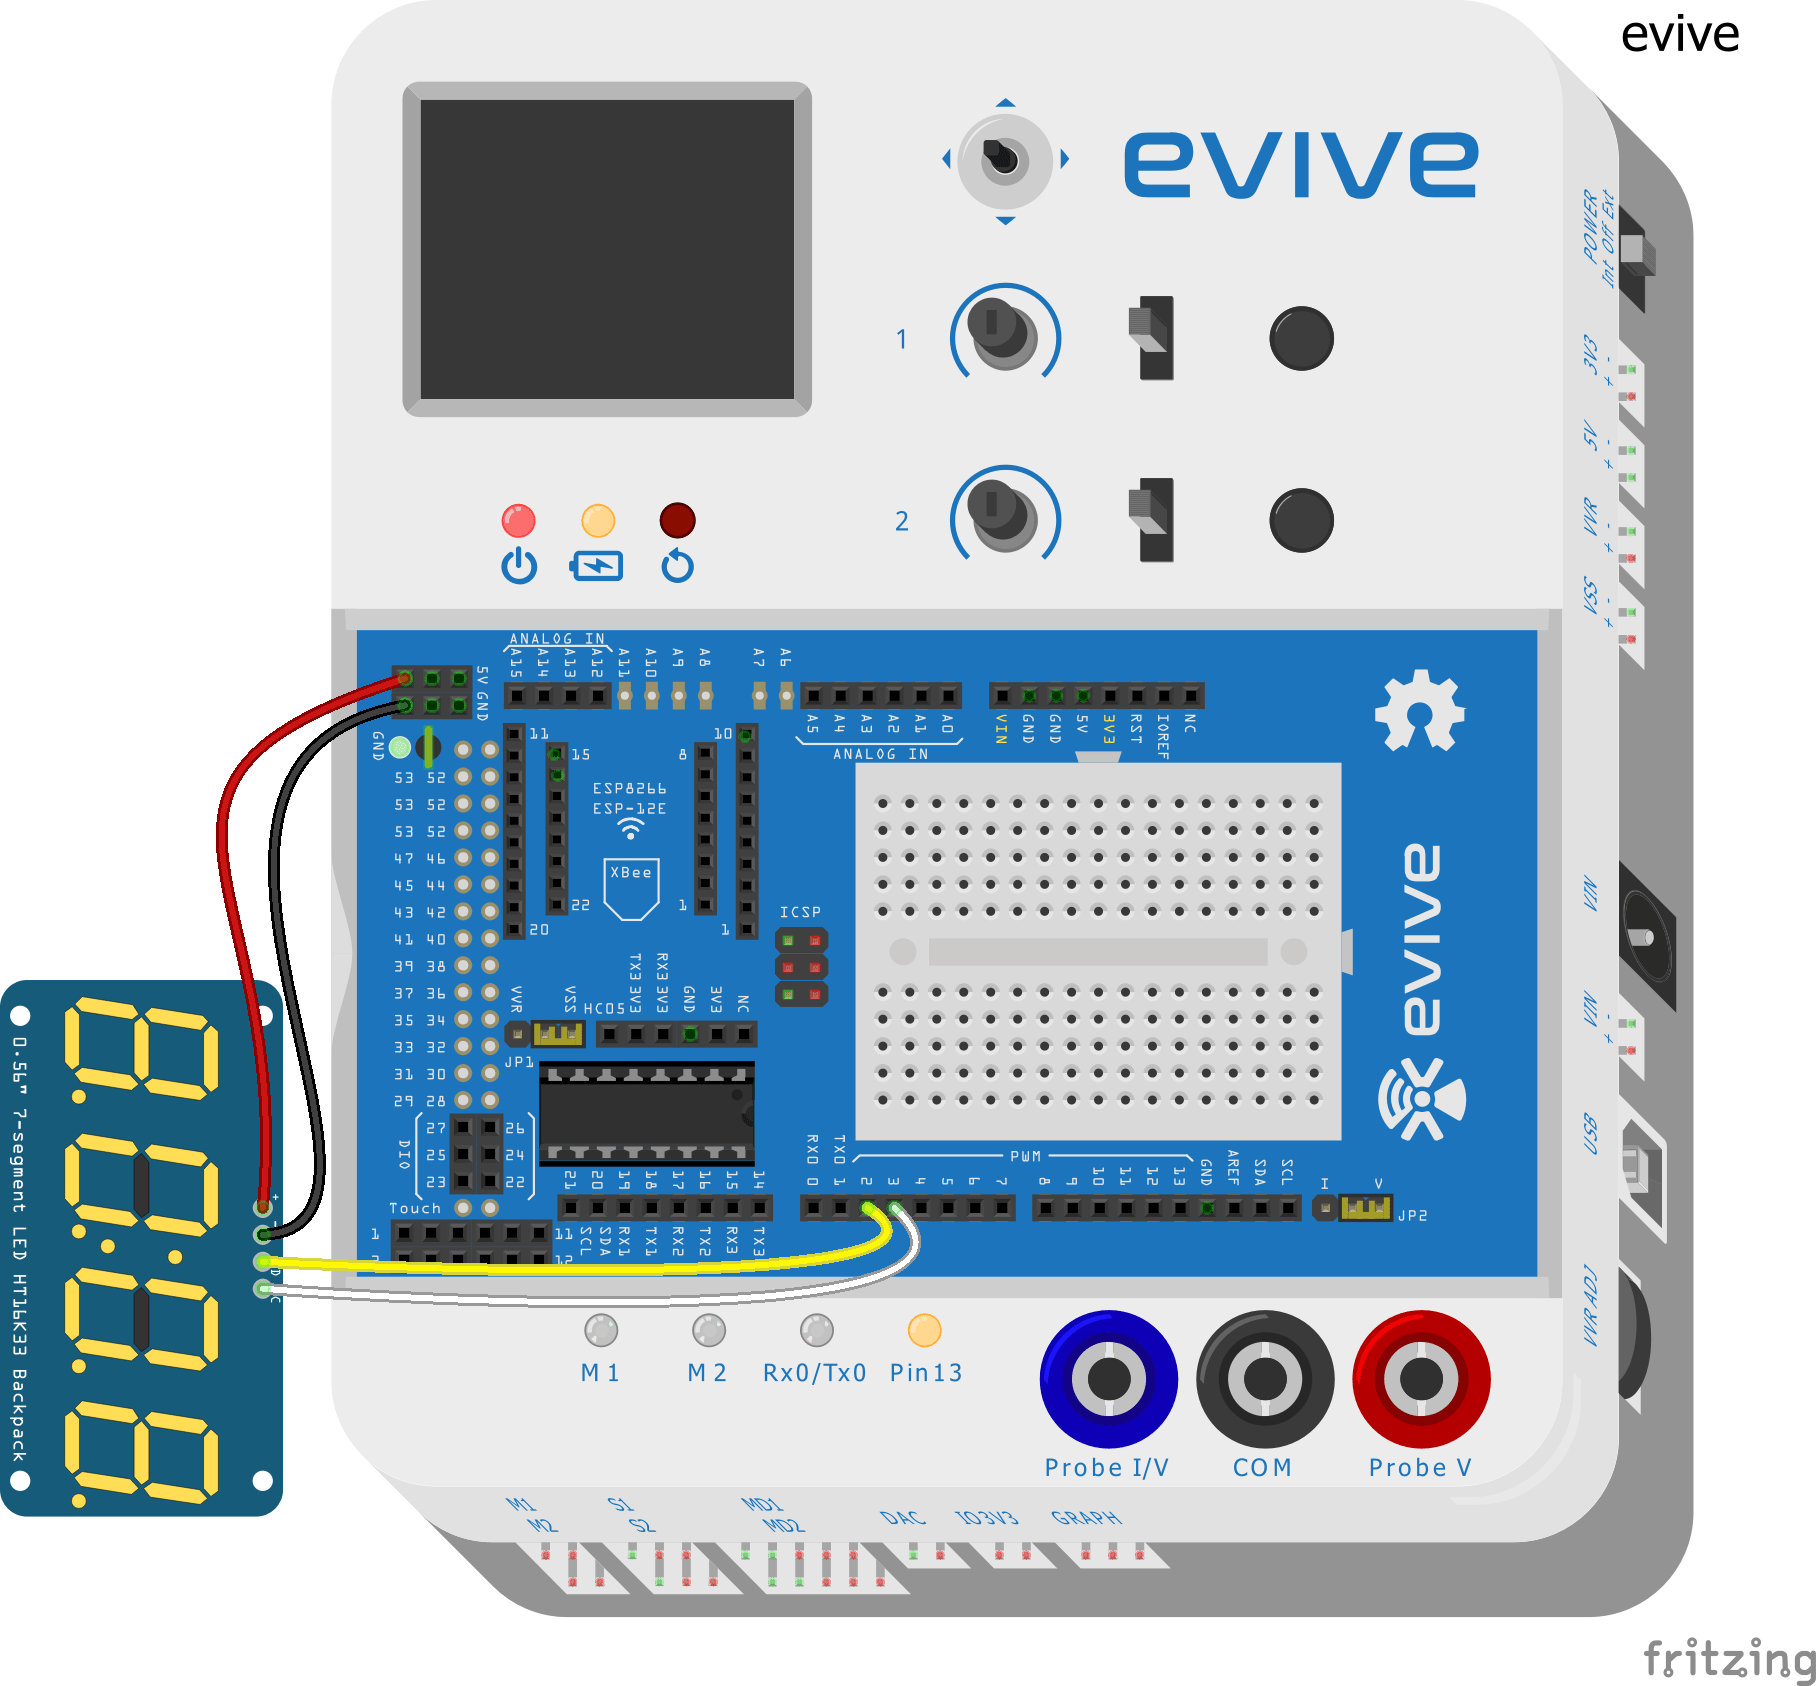 Making Digital Clock Using Tm1637 4 Digit Display Stempedia Wiring Diagram Of Electronic Connect Dio Modue To Pin Number 3 Evivewhite Wire In Circuit Gien Below